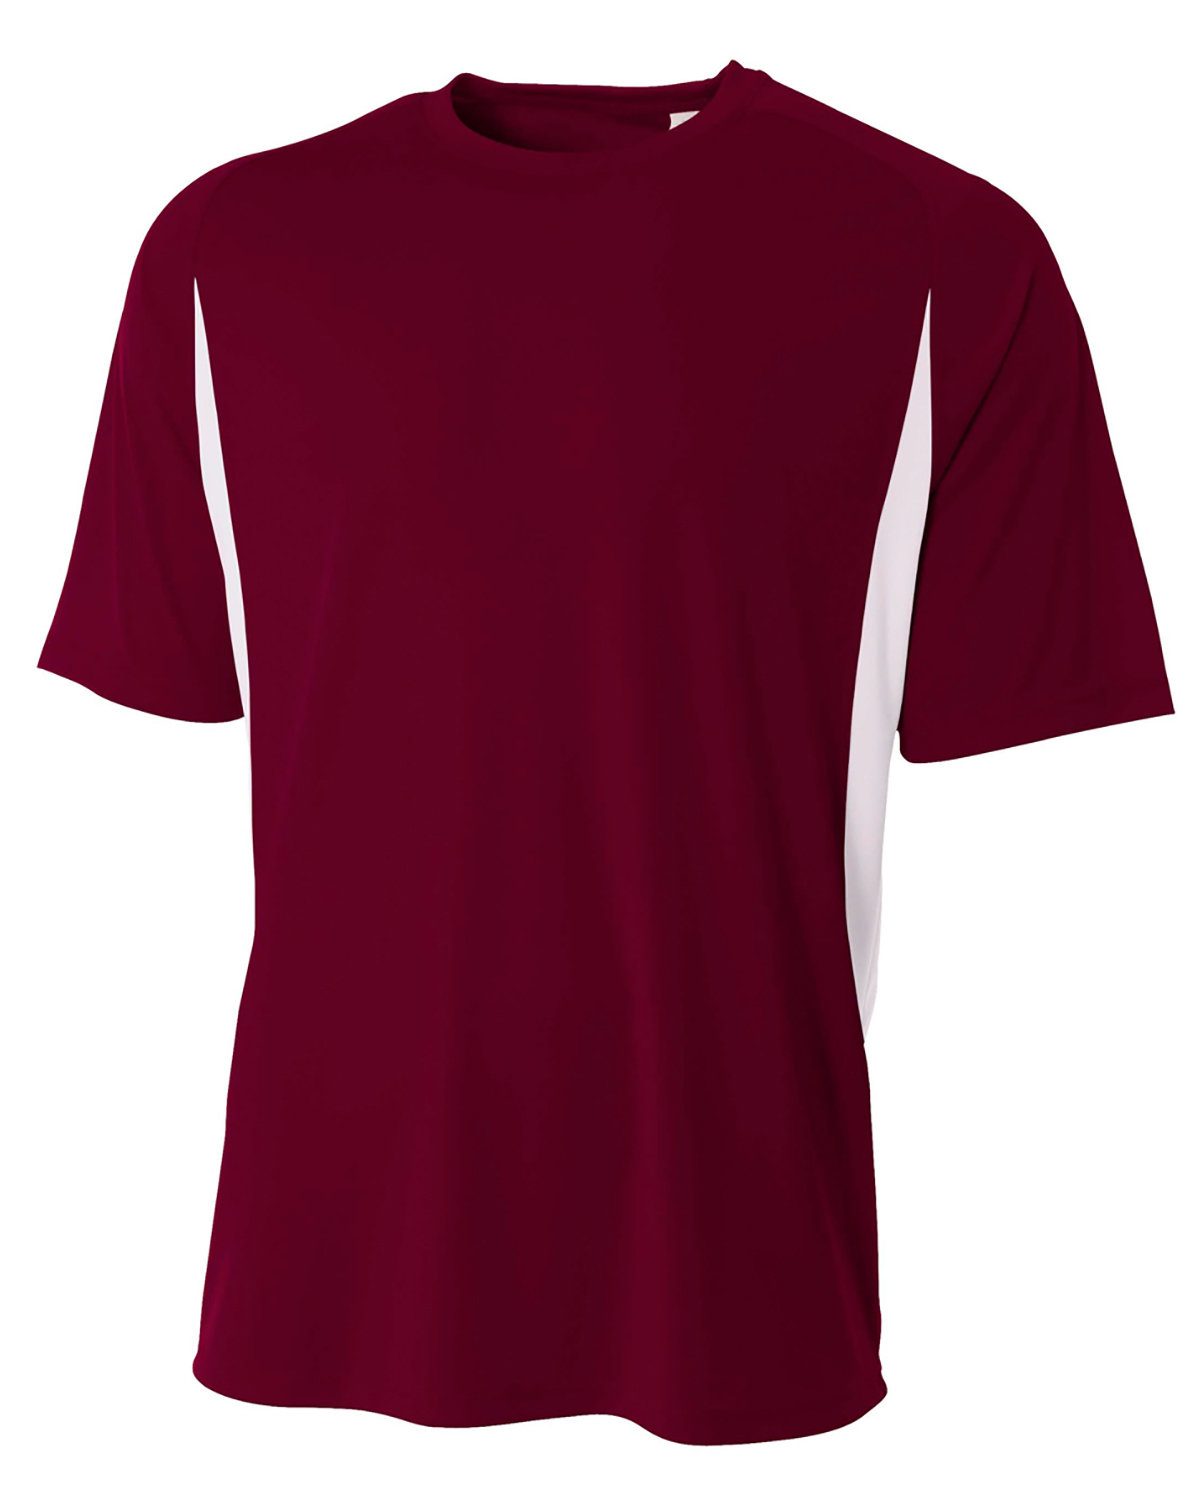 A4 Youth Cooling Performance Color Blocked T-Shirt MAROON/ WHITE